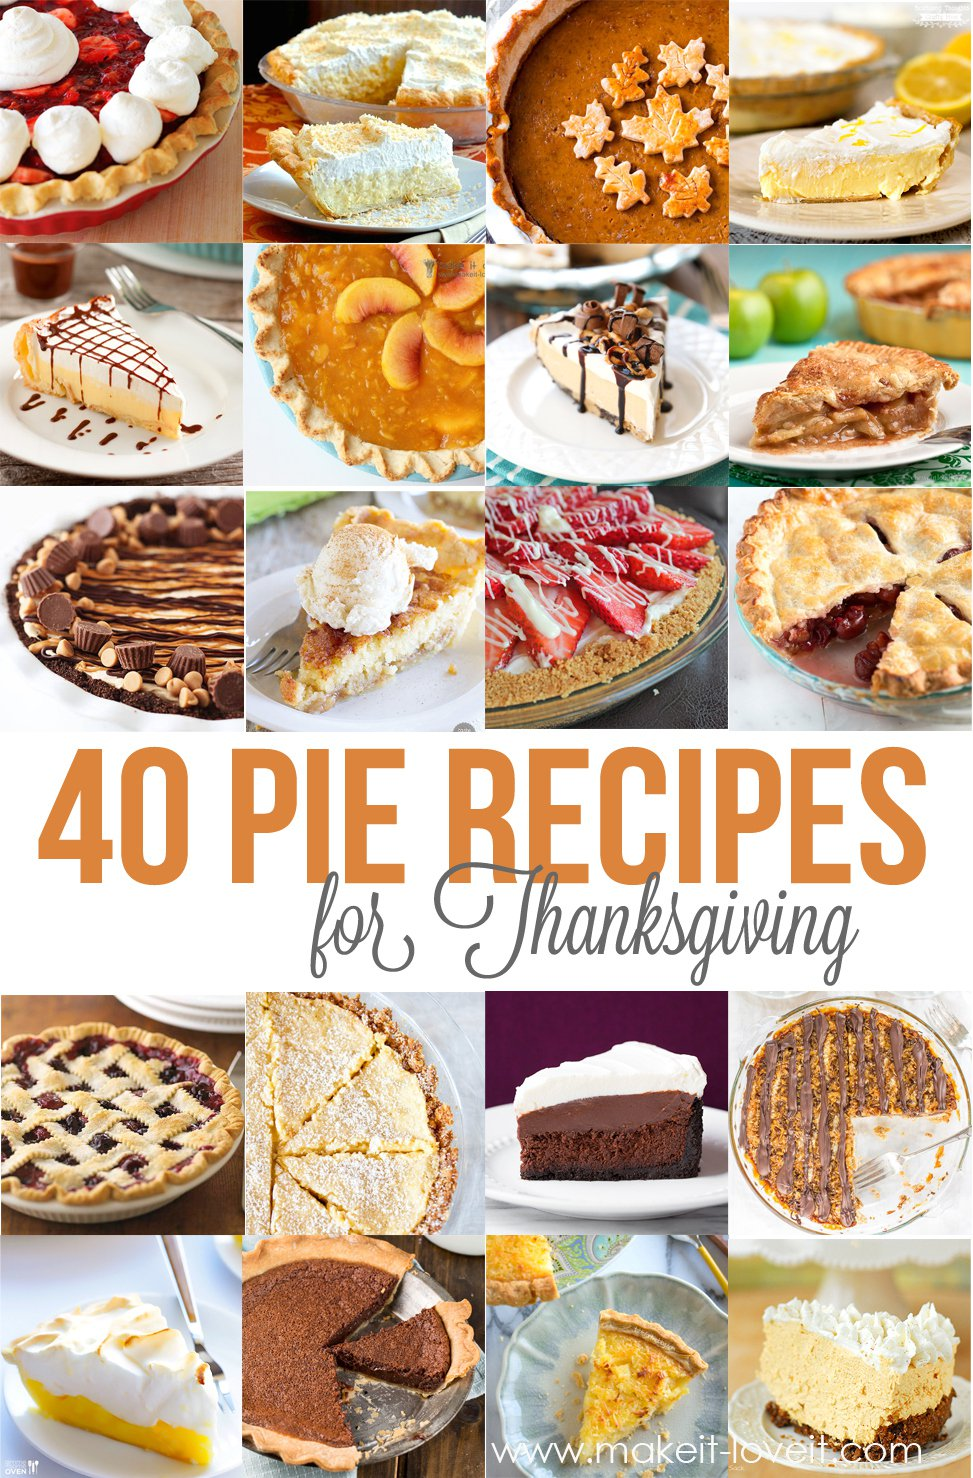 40-pie-recipes-for-thanksgiving